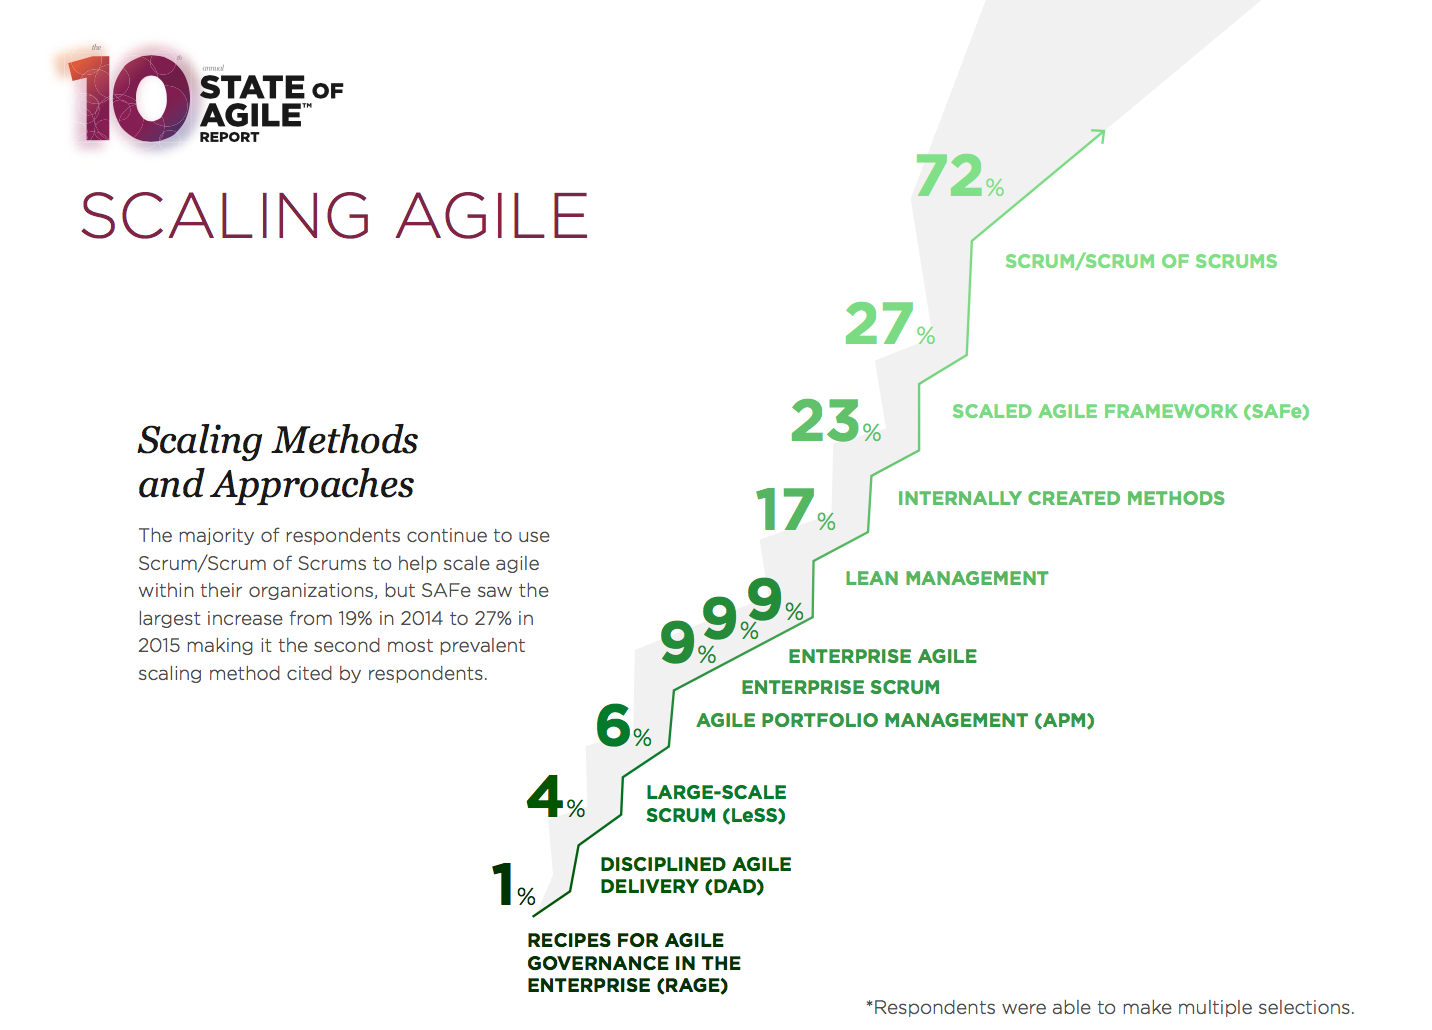 VersionOne survey - Scaling Agile